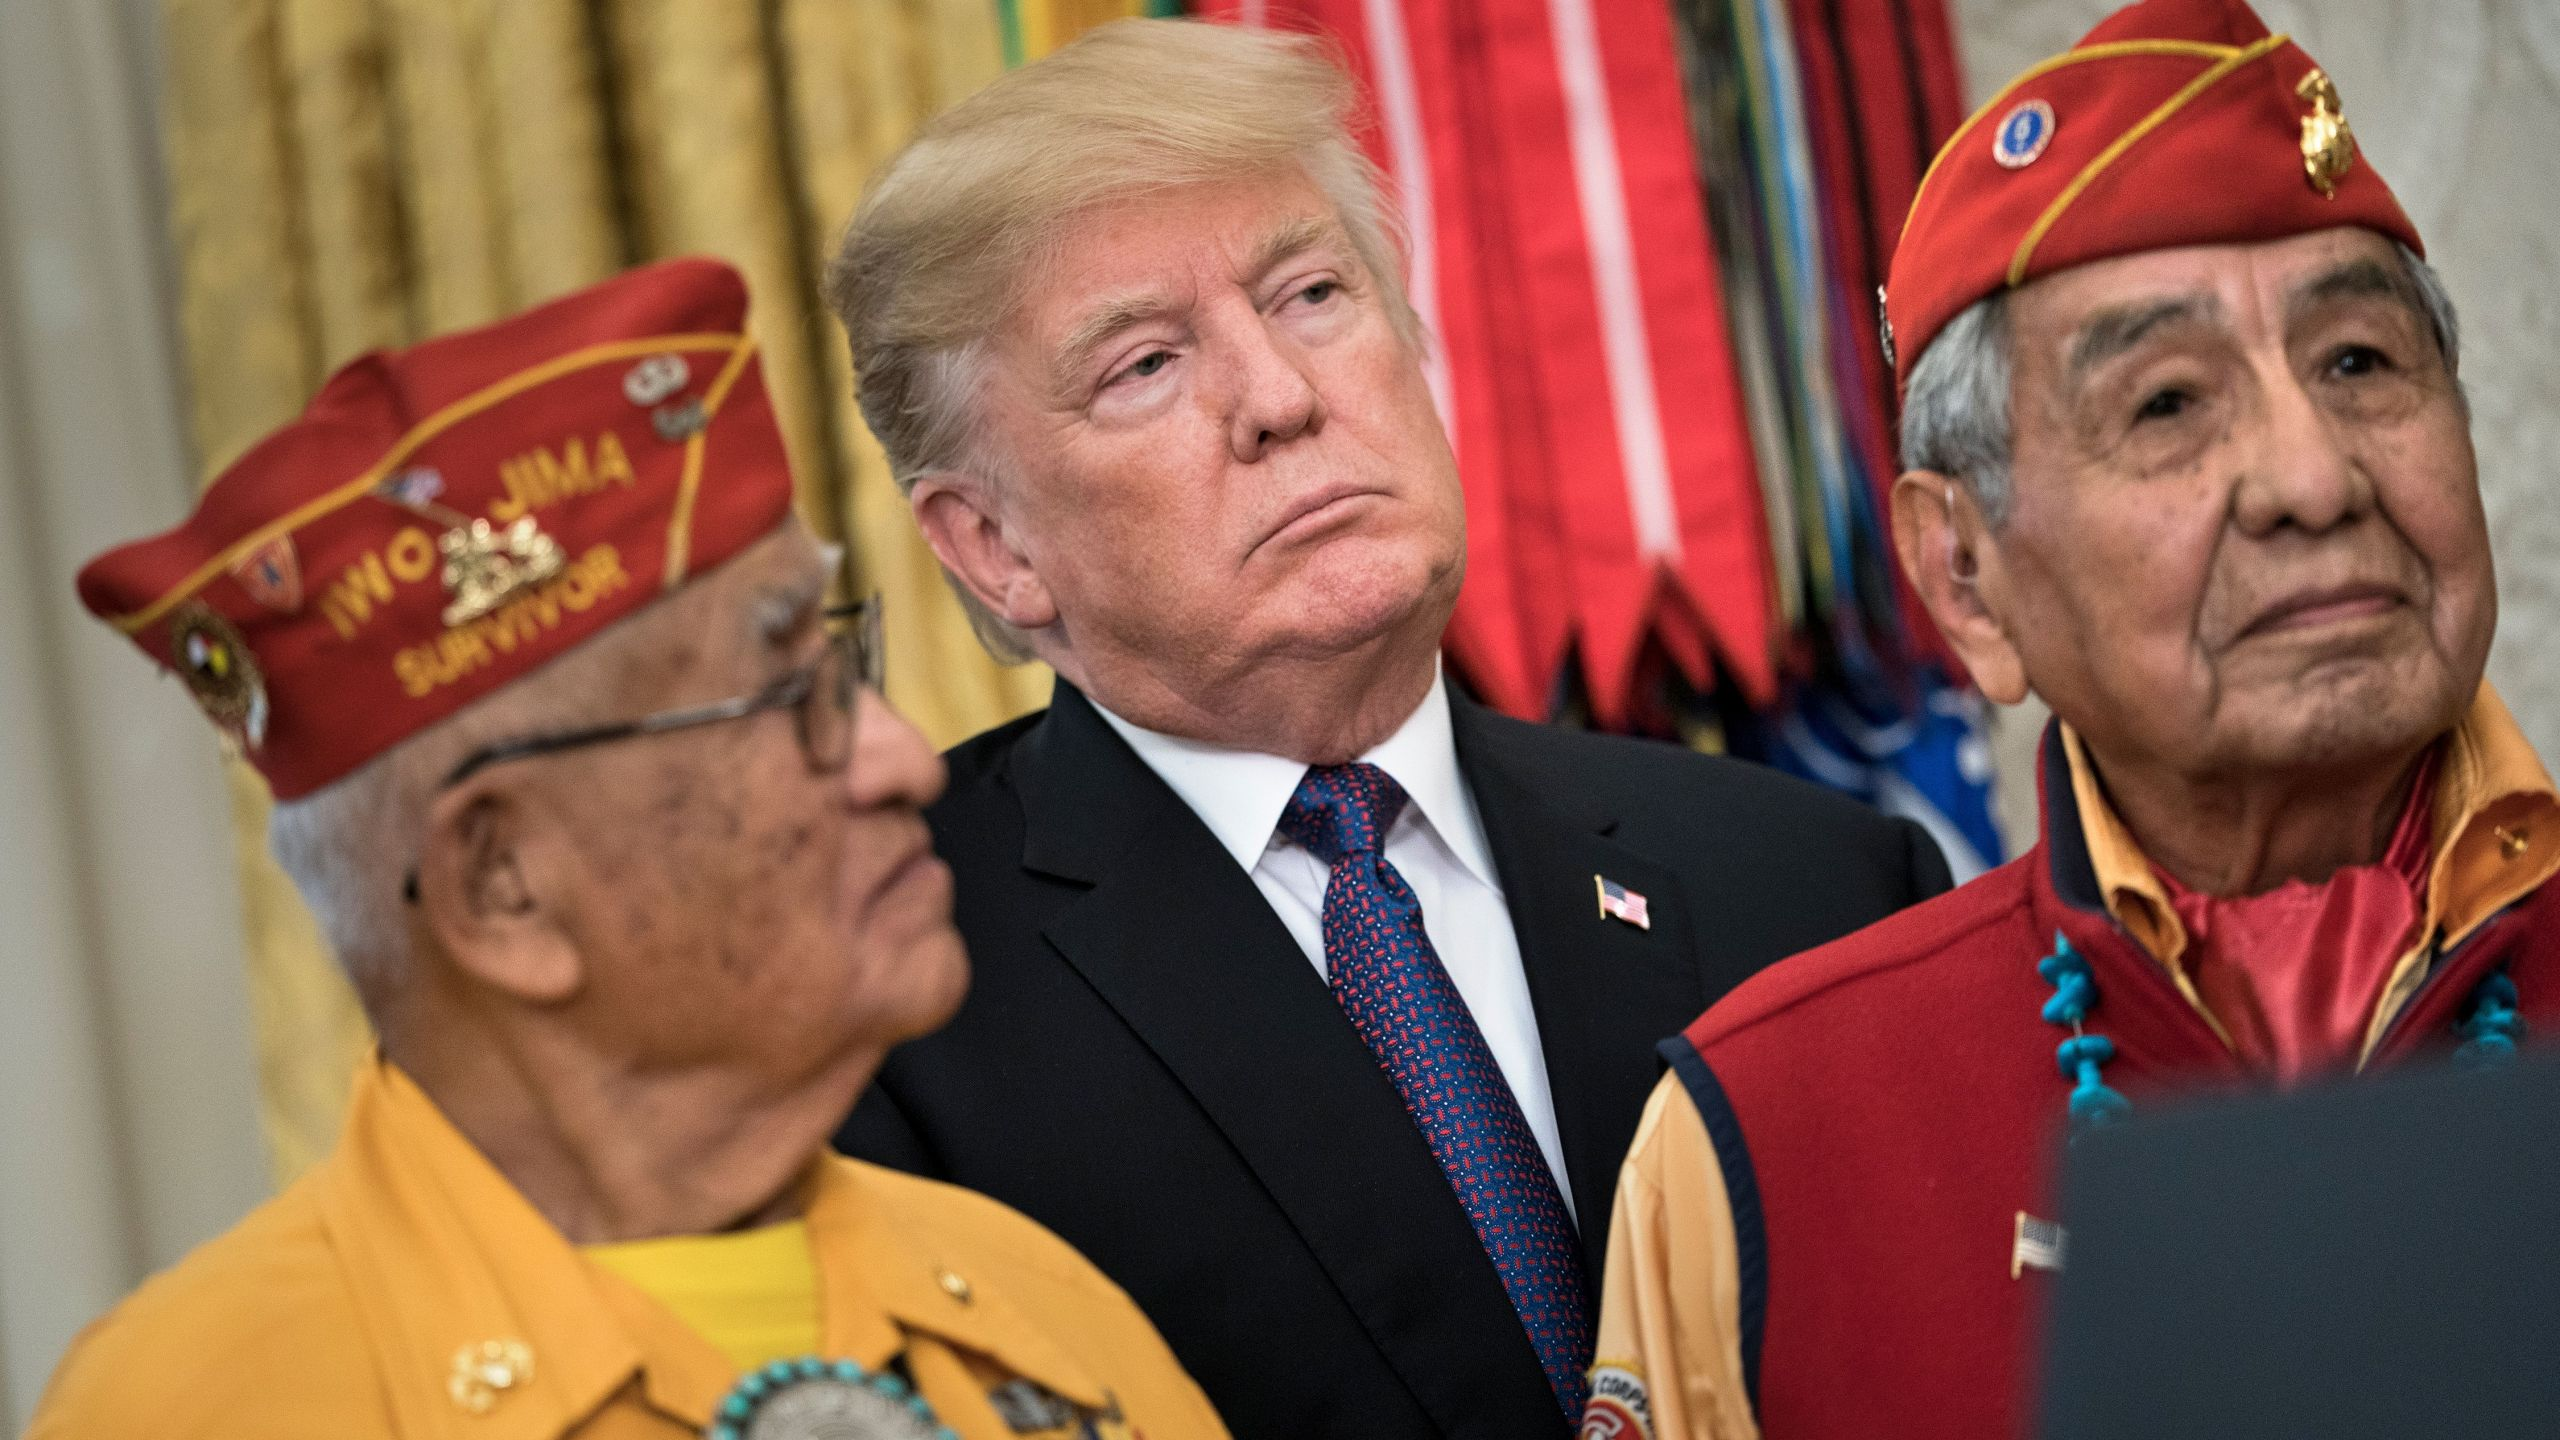 President Donald Trump listens with Navajo code talkers in the Oval Office during an event to honor Native American code talkers who served in World War II on Nov. 27, 2017. (Credit: Brendan Smialowski / AFP / Getty Images)